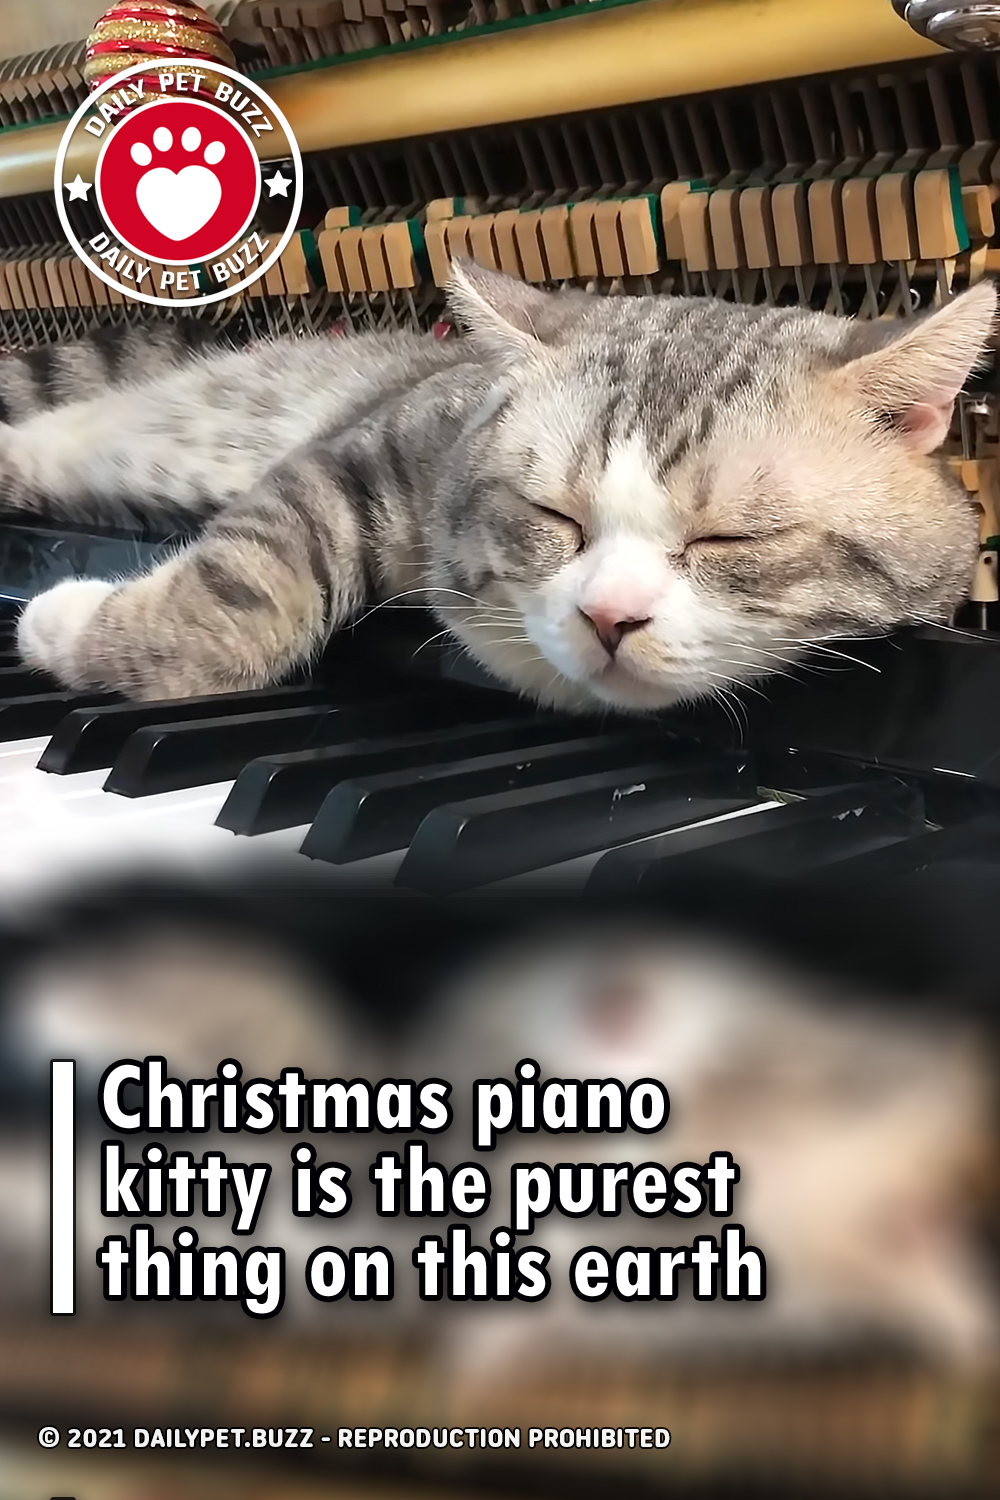 Christmas piano kitty is the purest thing on this earth